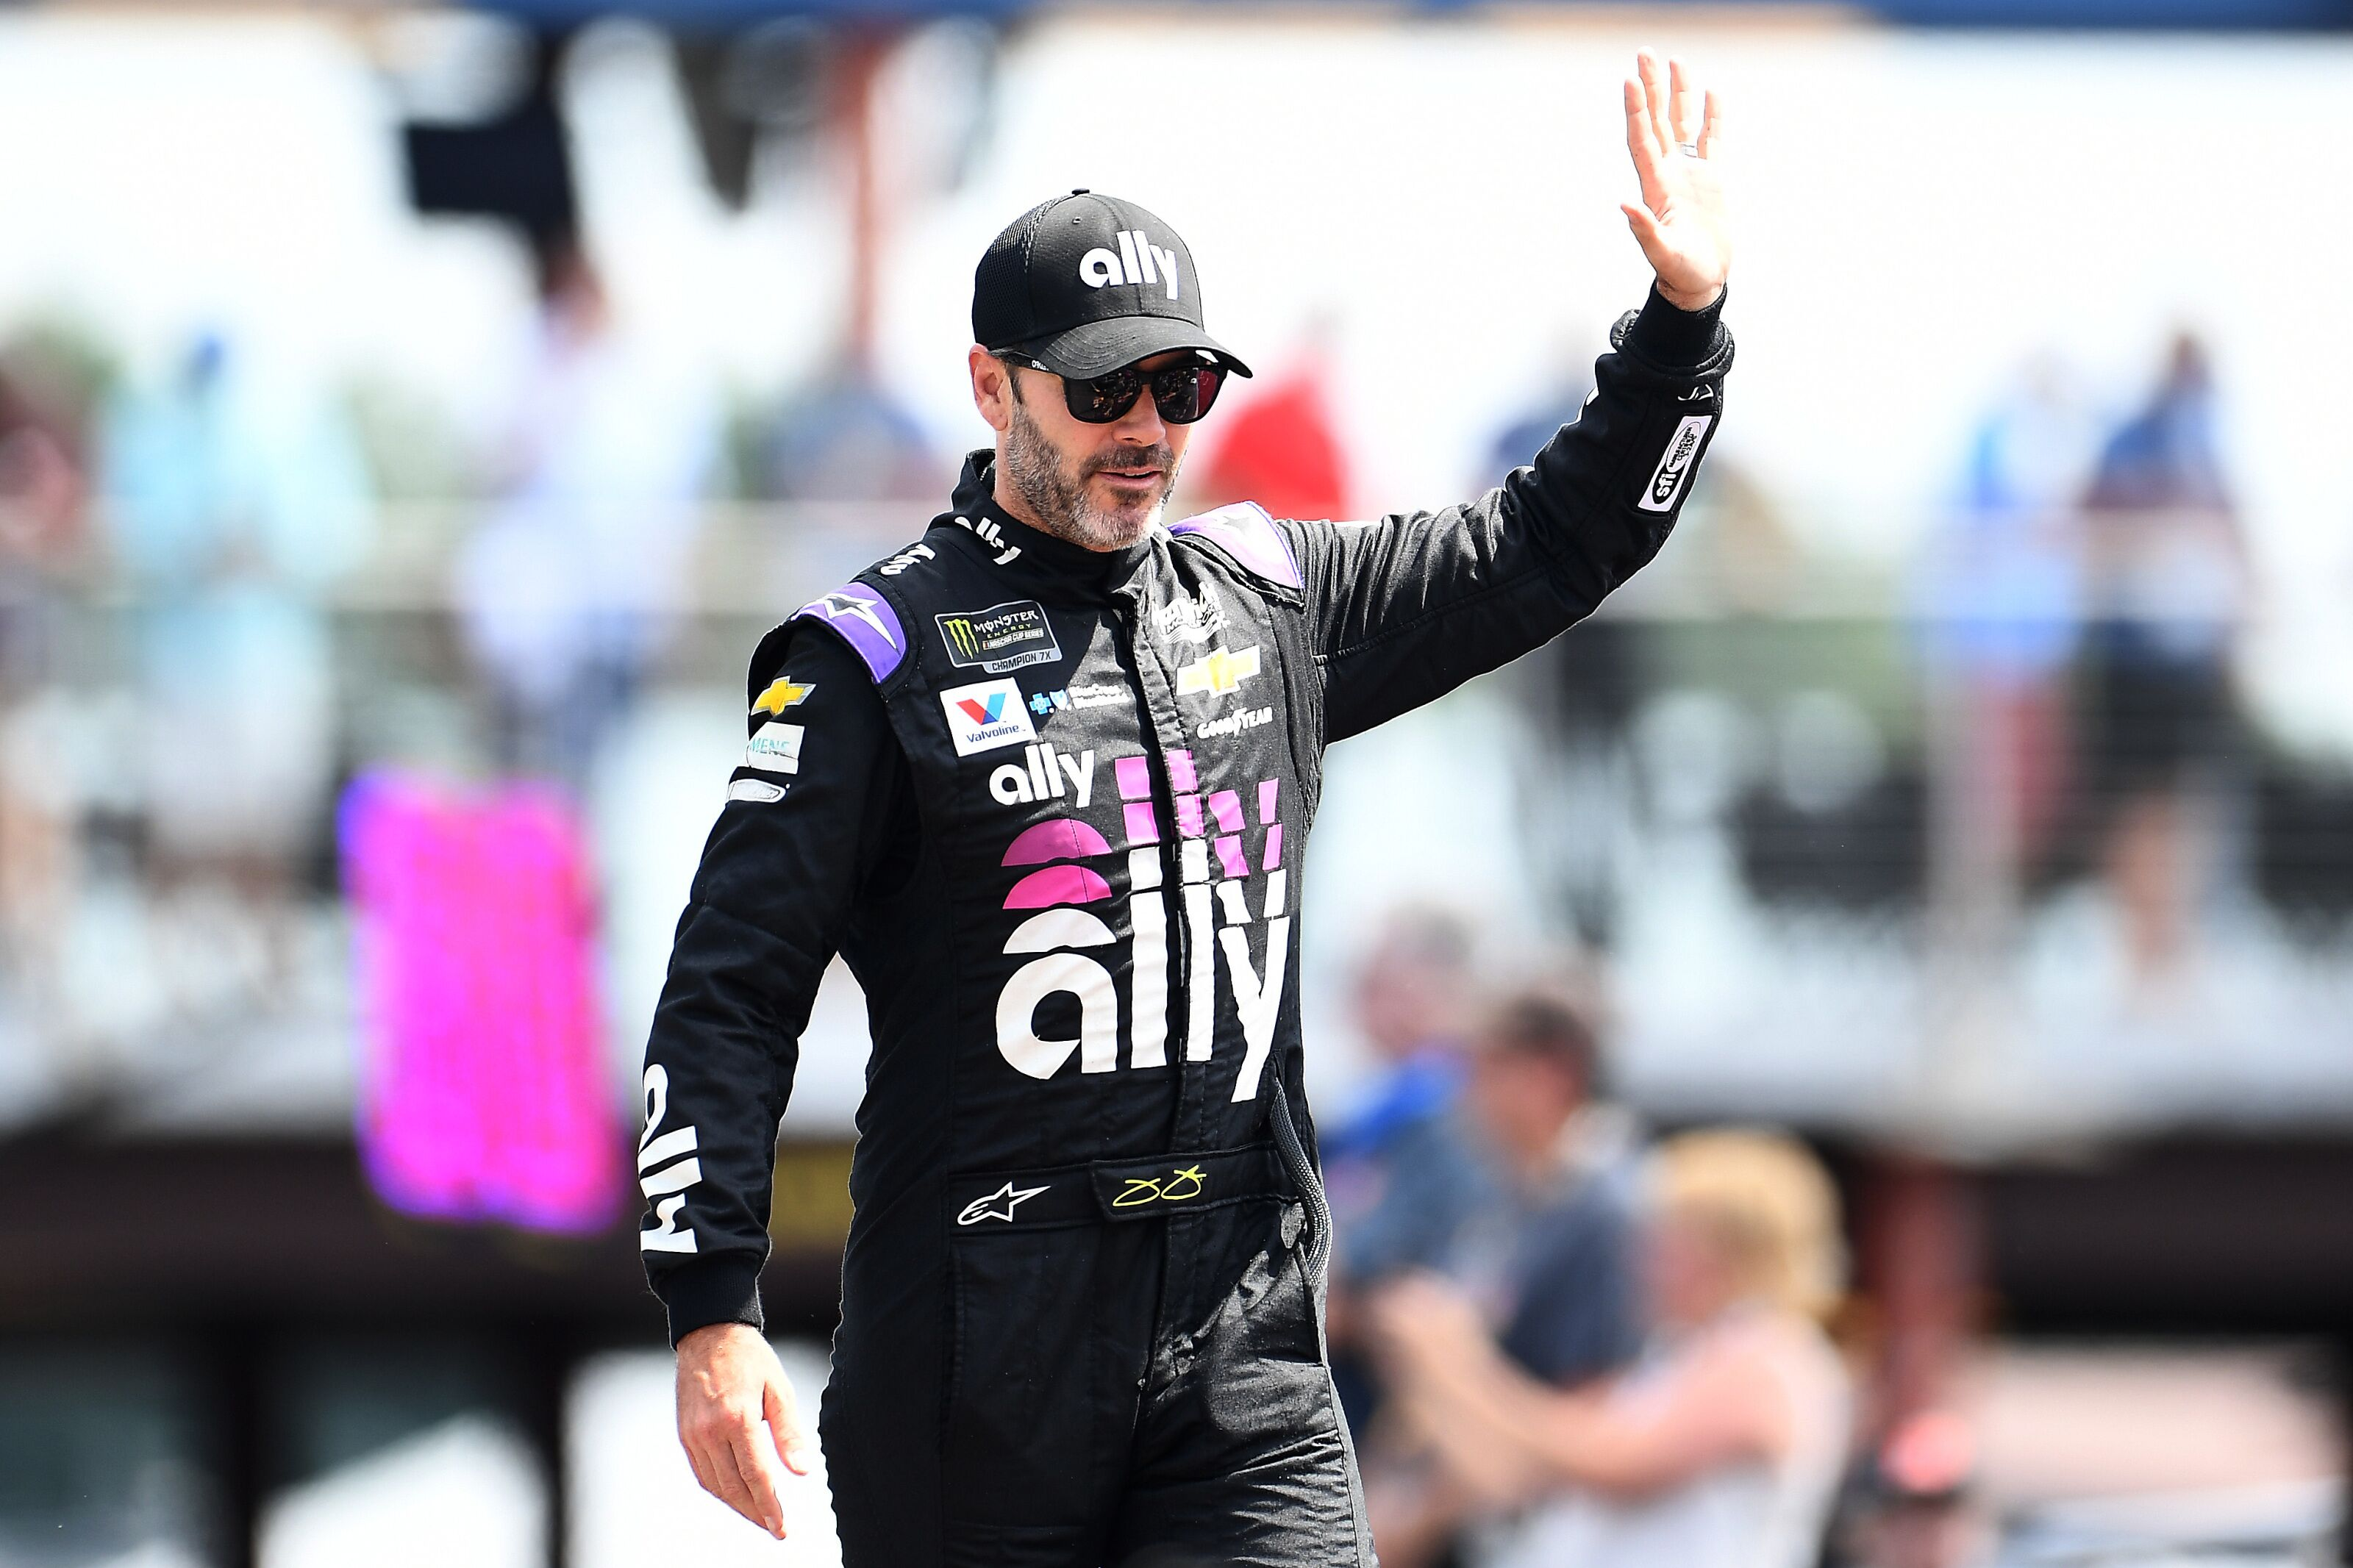 NASCAR: Will Jimmie Johnson win another Cup race?